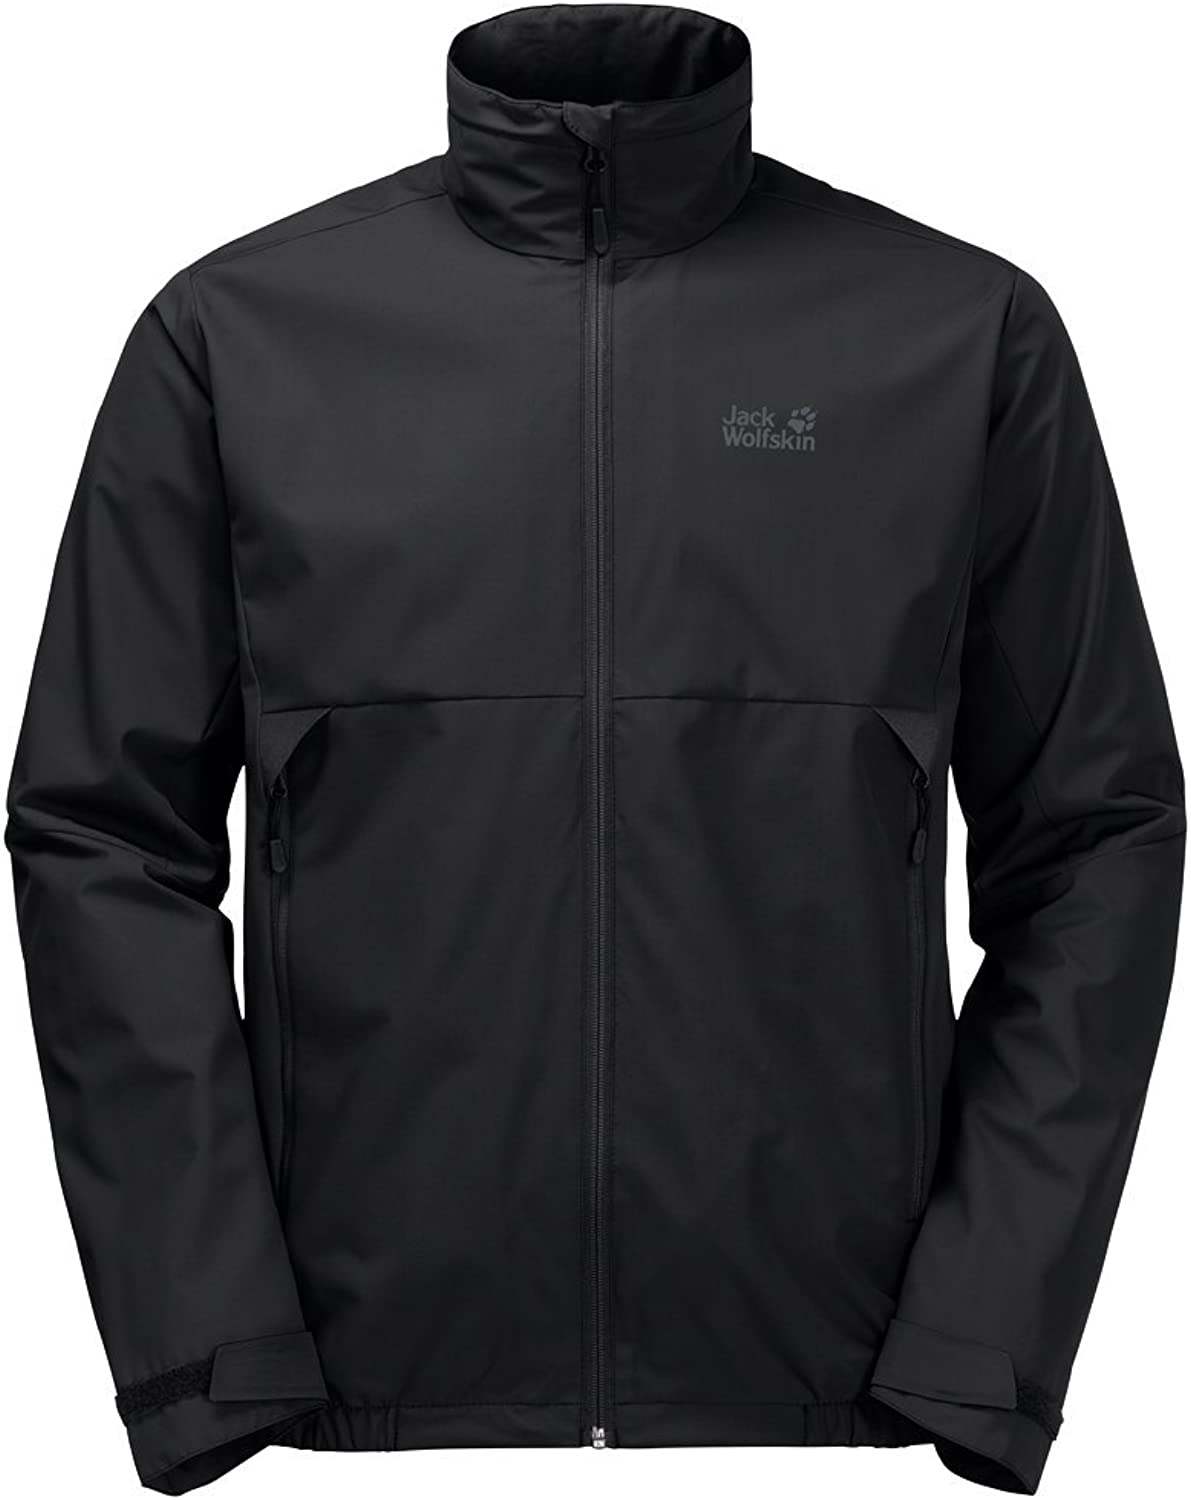 Jack Wolfskin Men's Quinto Valley Jackets Black XLarge